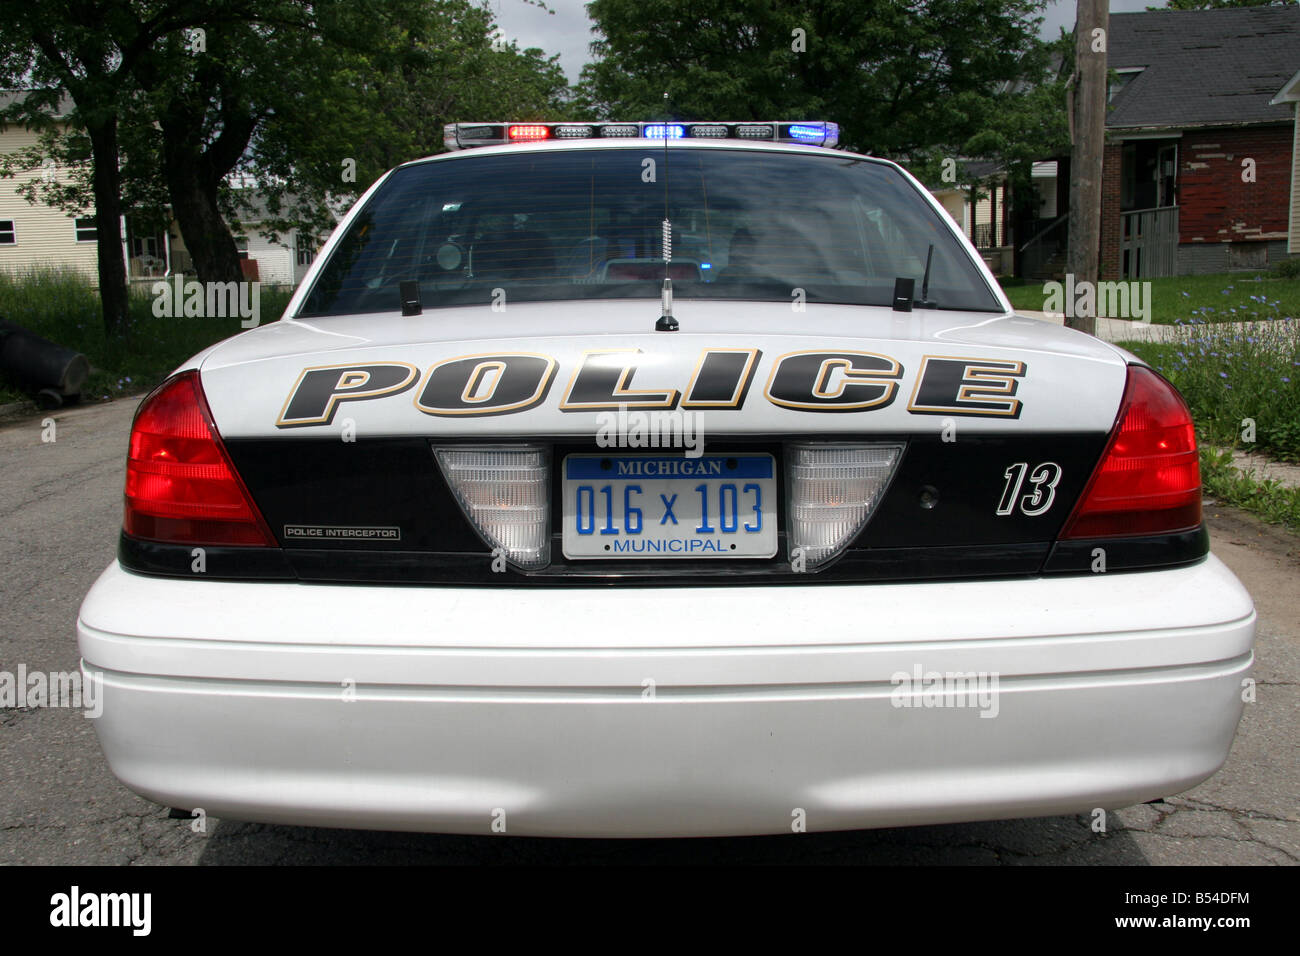 Rear of Grosse Point Park Police car - Stock Image